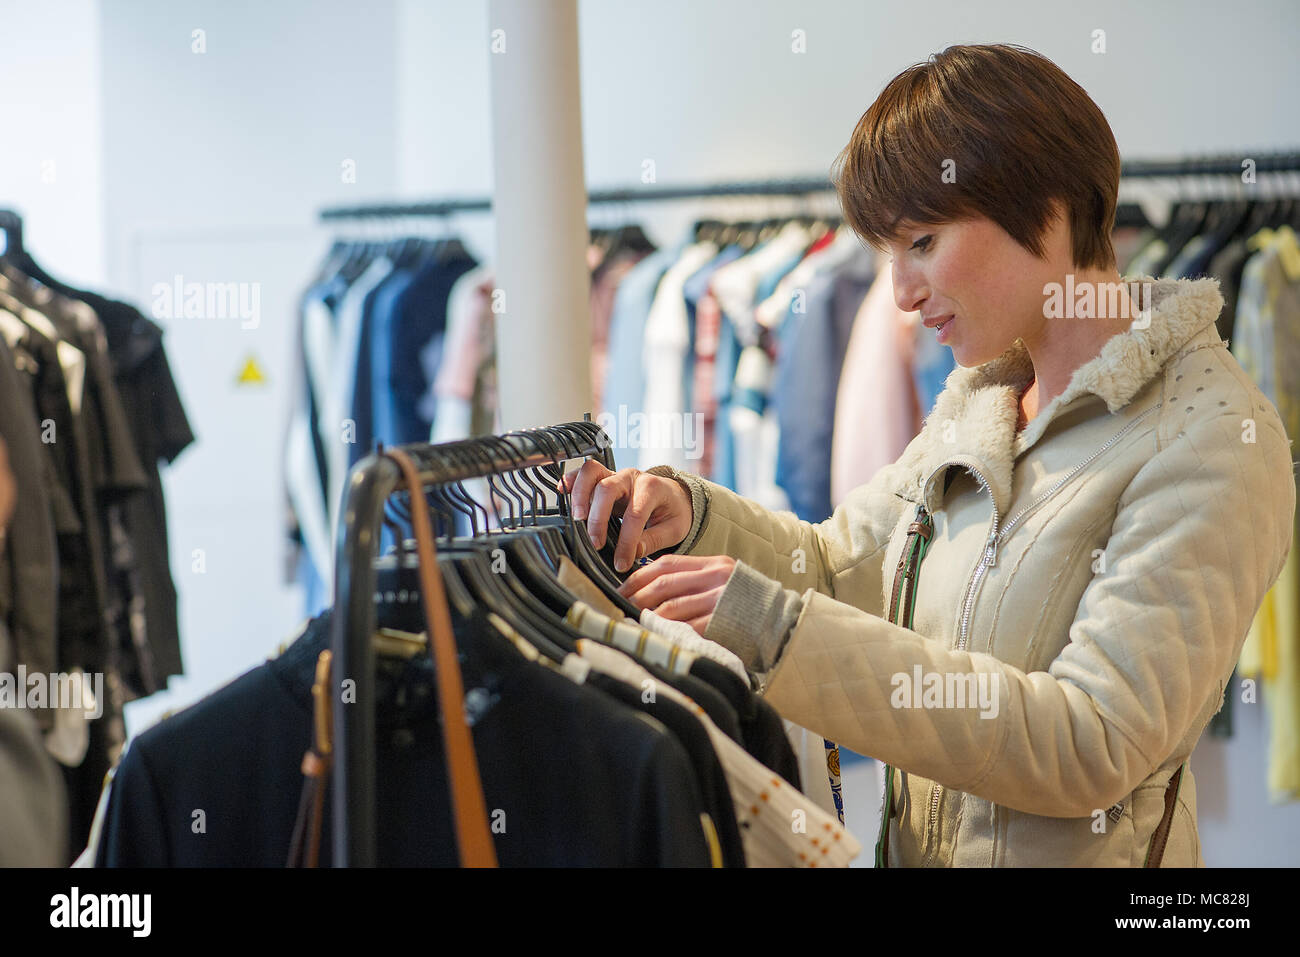 Woman shopping in clothing store - Stock Image